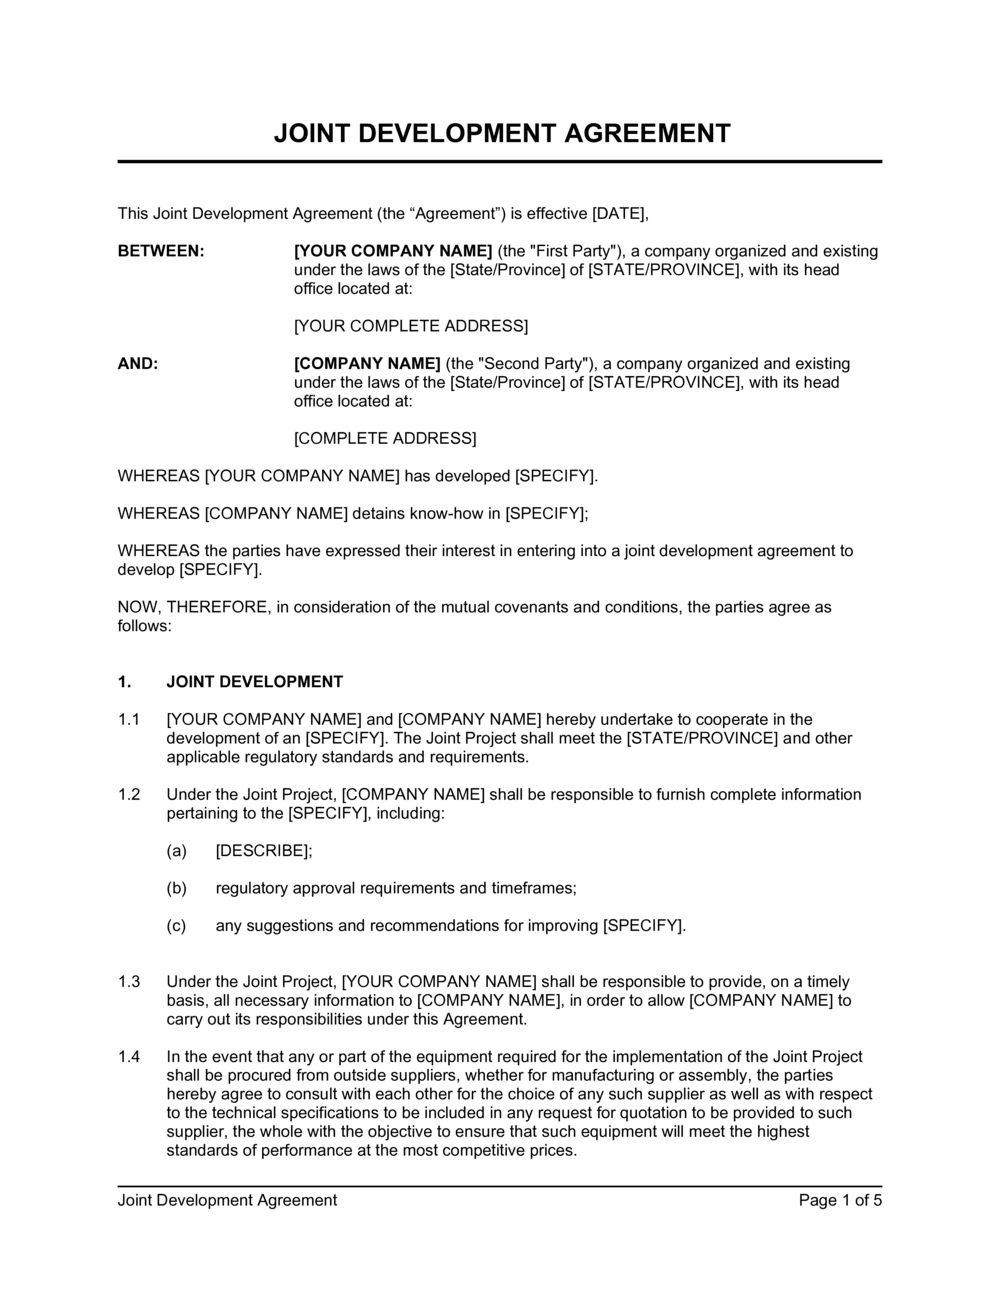 Business-in-a-Box's Joint Development Agreement Standard Template